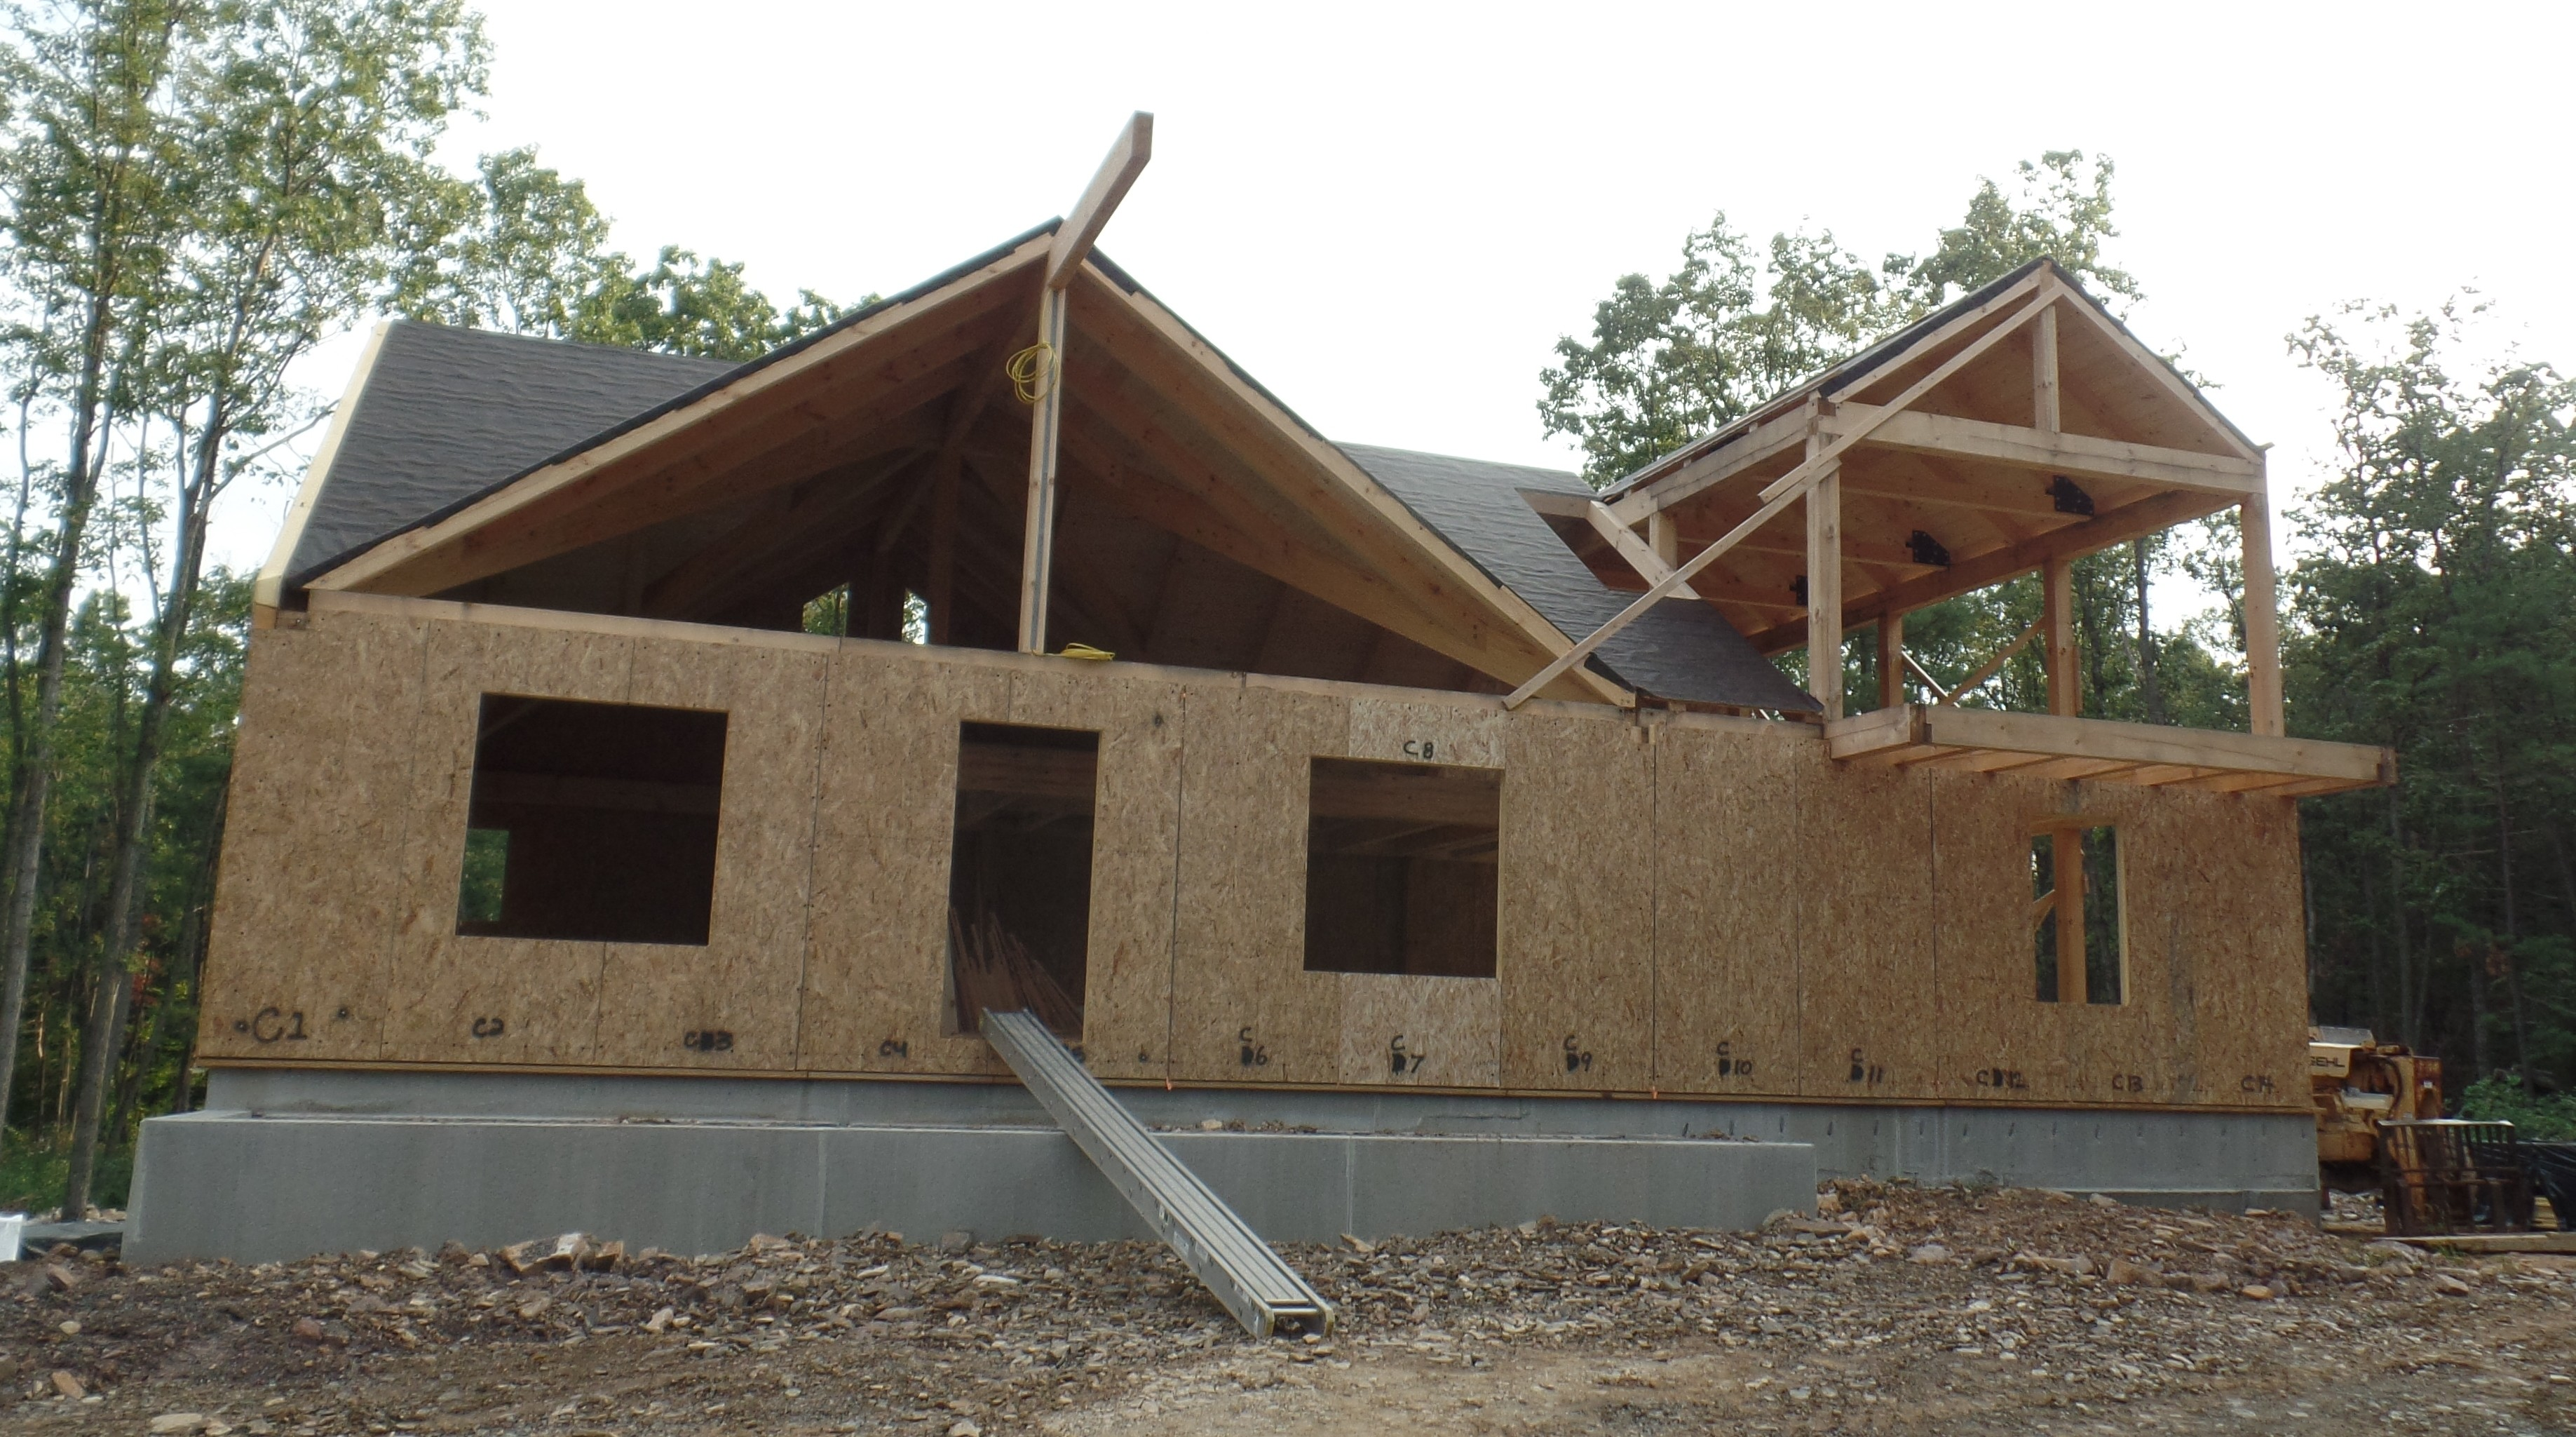 Custom Post and Beam Home: Under Construction - Part 6